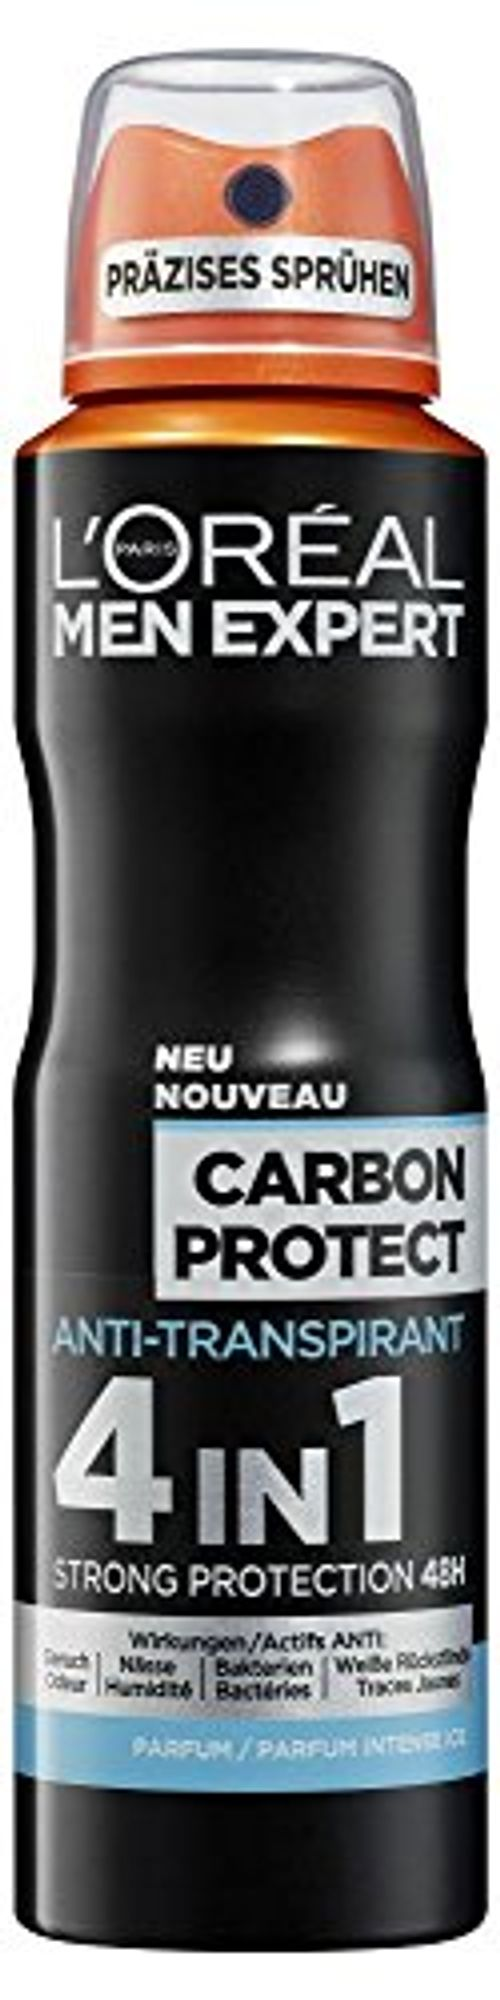 photo Wallpaper of L'Oreal Paris-6x Men Expert Carbon Aerosol Protect 4 En 1-Carbon Protect 4 in 1